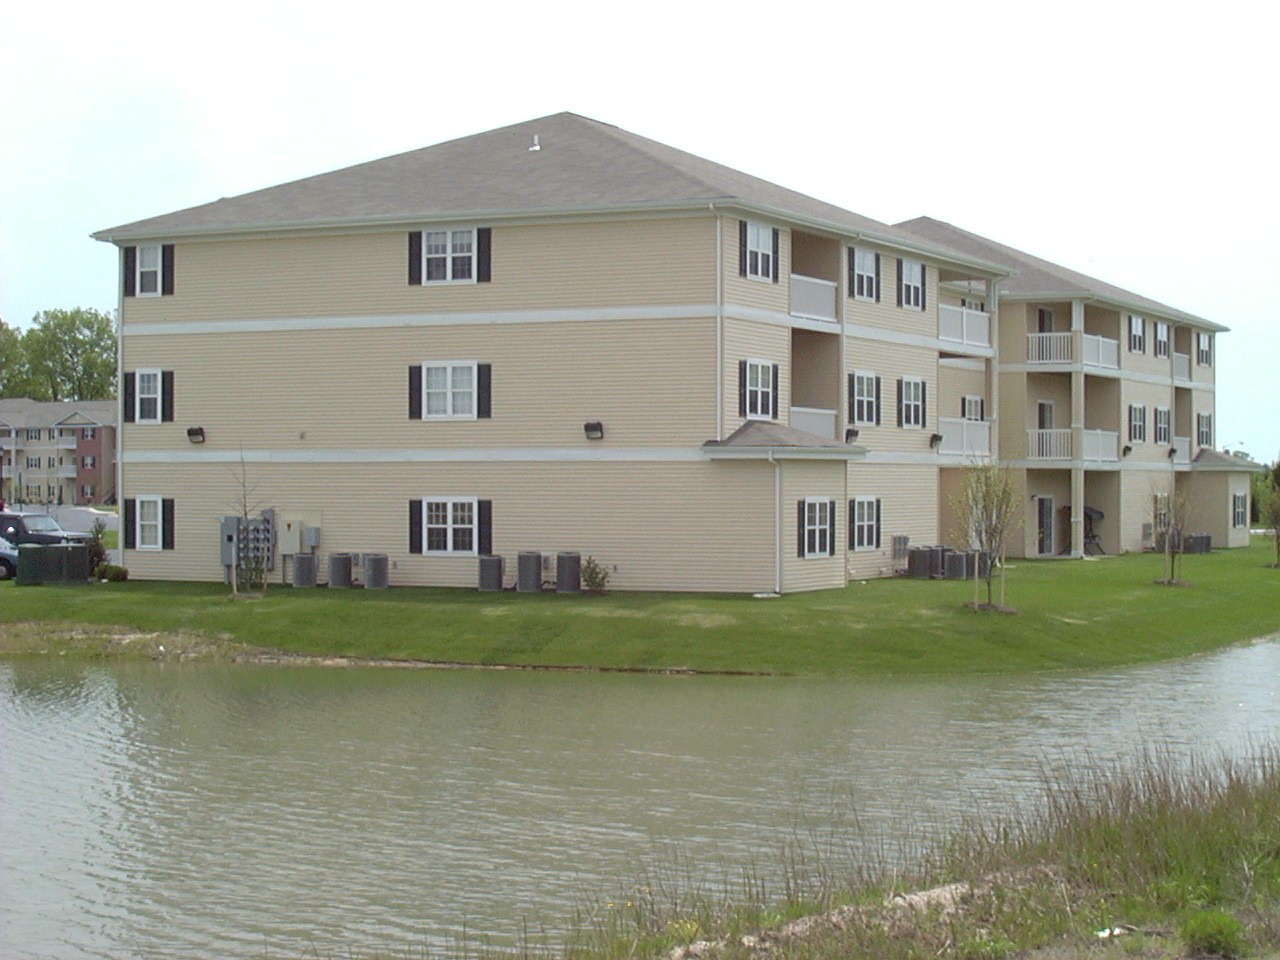 CBG builds Mill Pond Village Phase II, a 120 Garden-Style Luxury Apartment Community in Salisbury, MD - Image #5